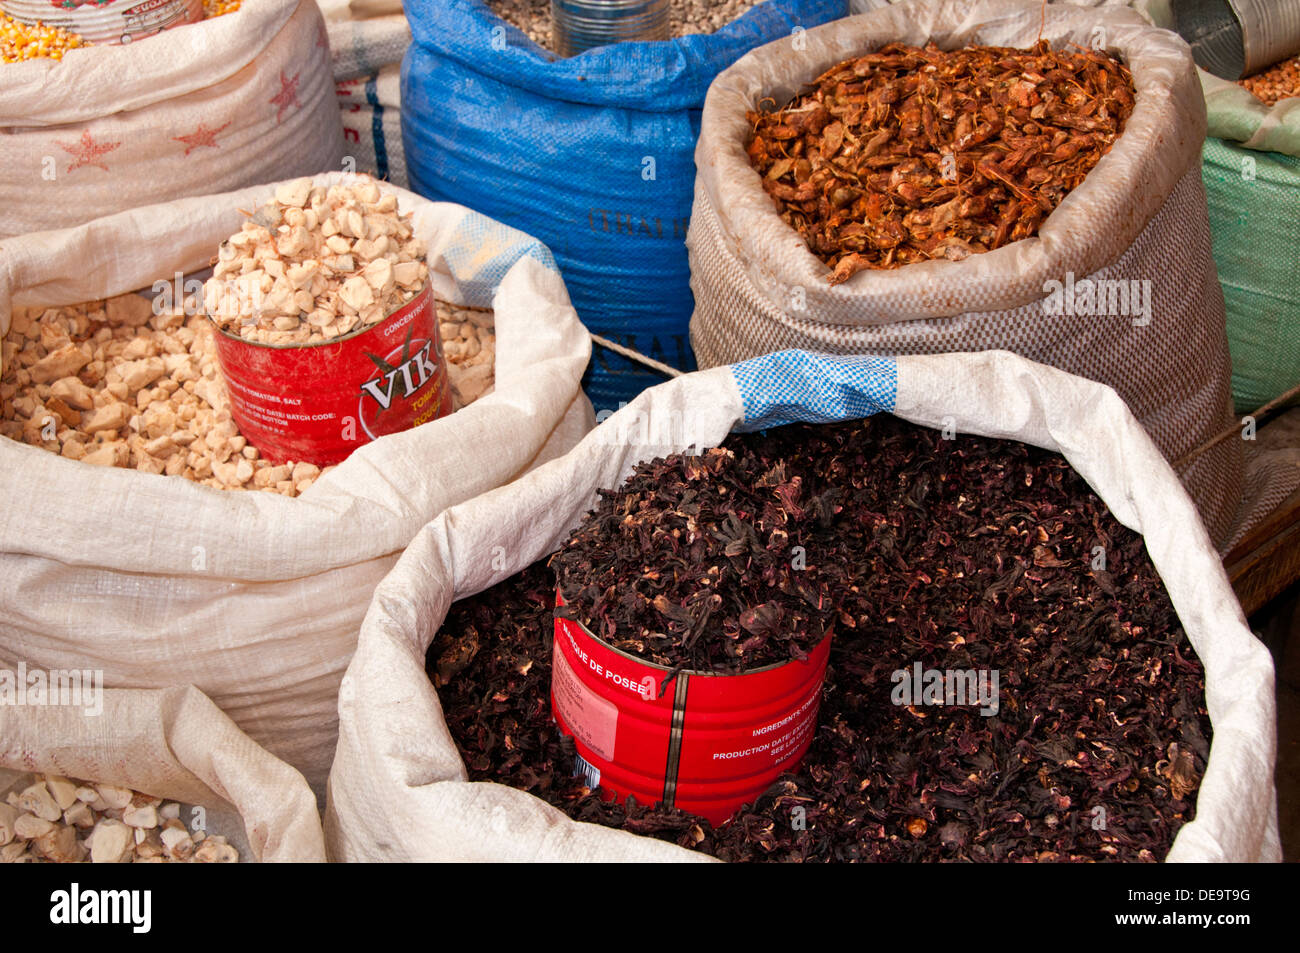 Spices and Pulses for sale in Bags in Serrekunda Market, The Gambia, West Africa - Stock Image